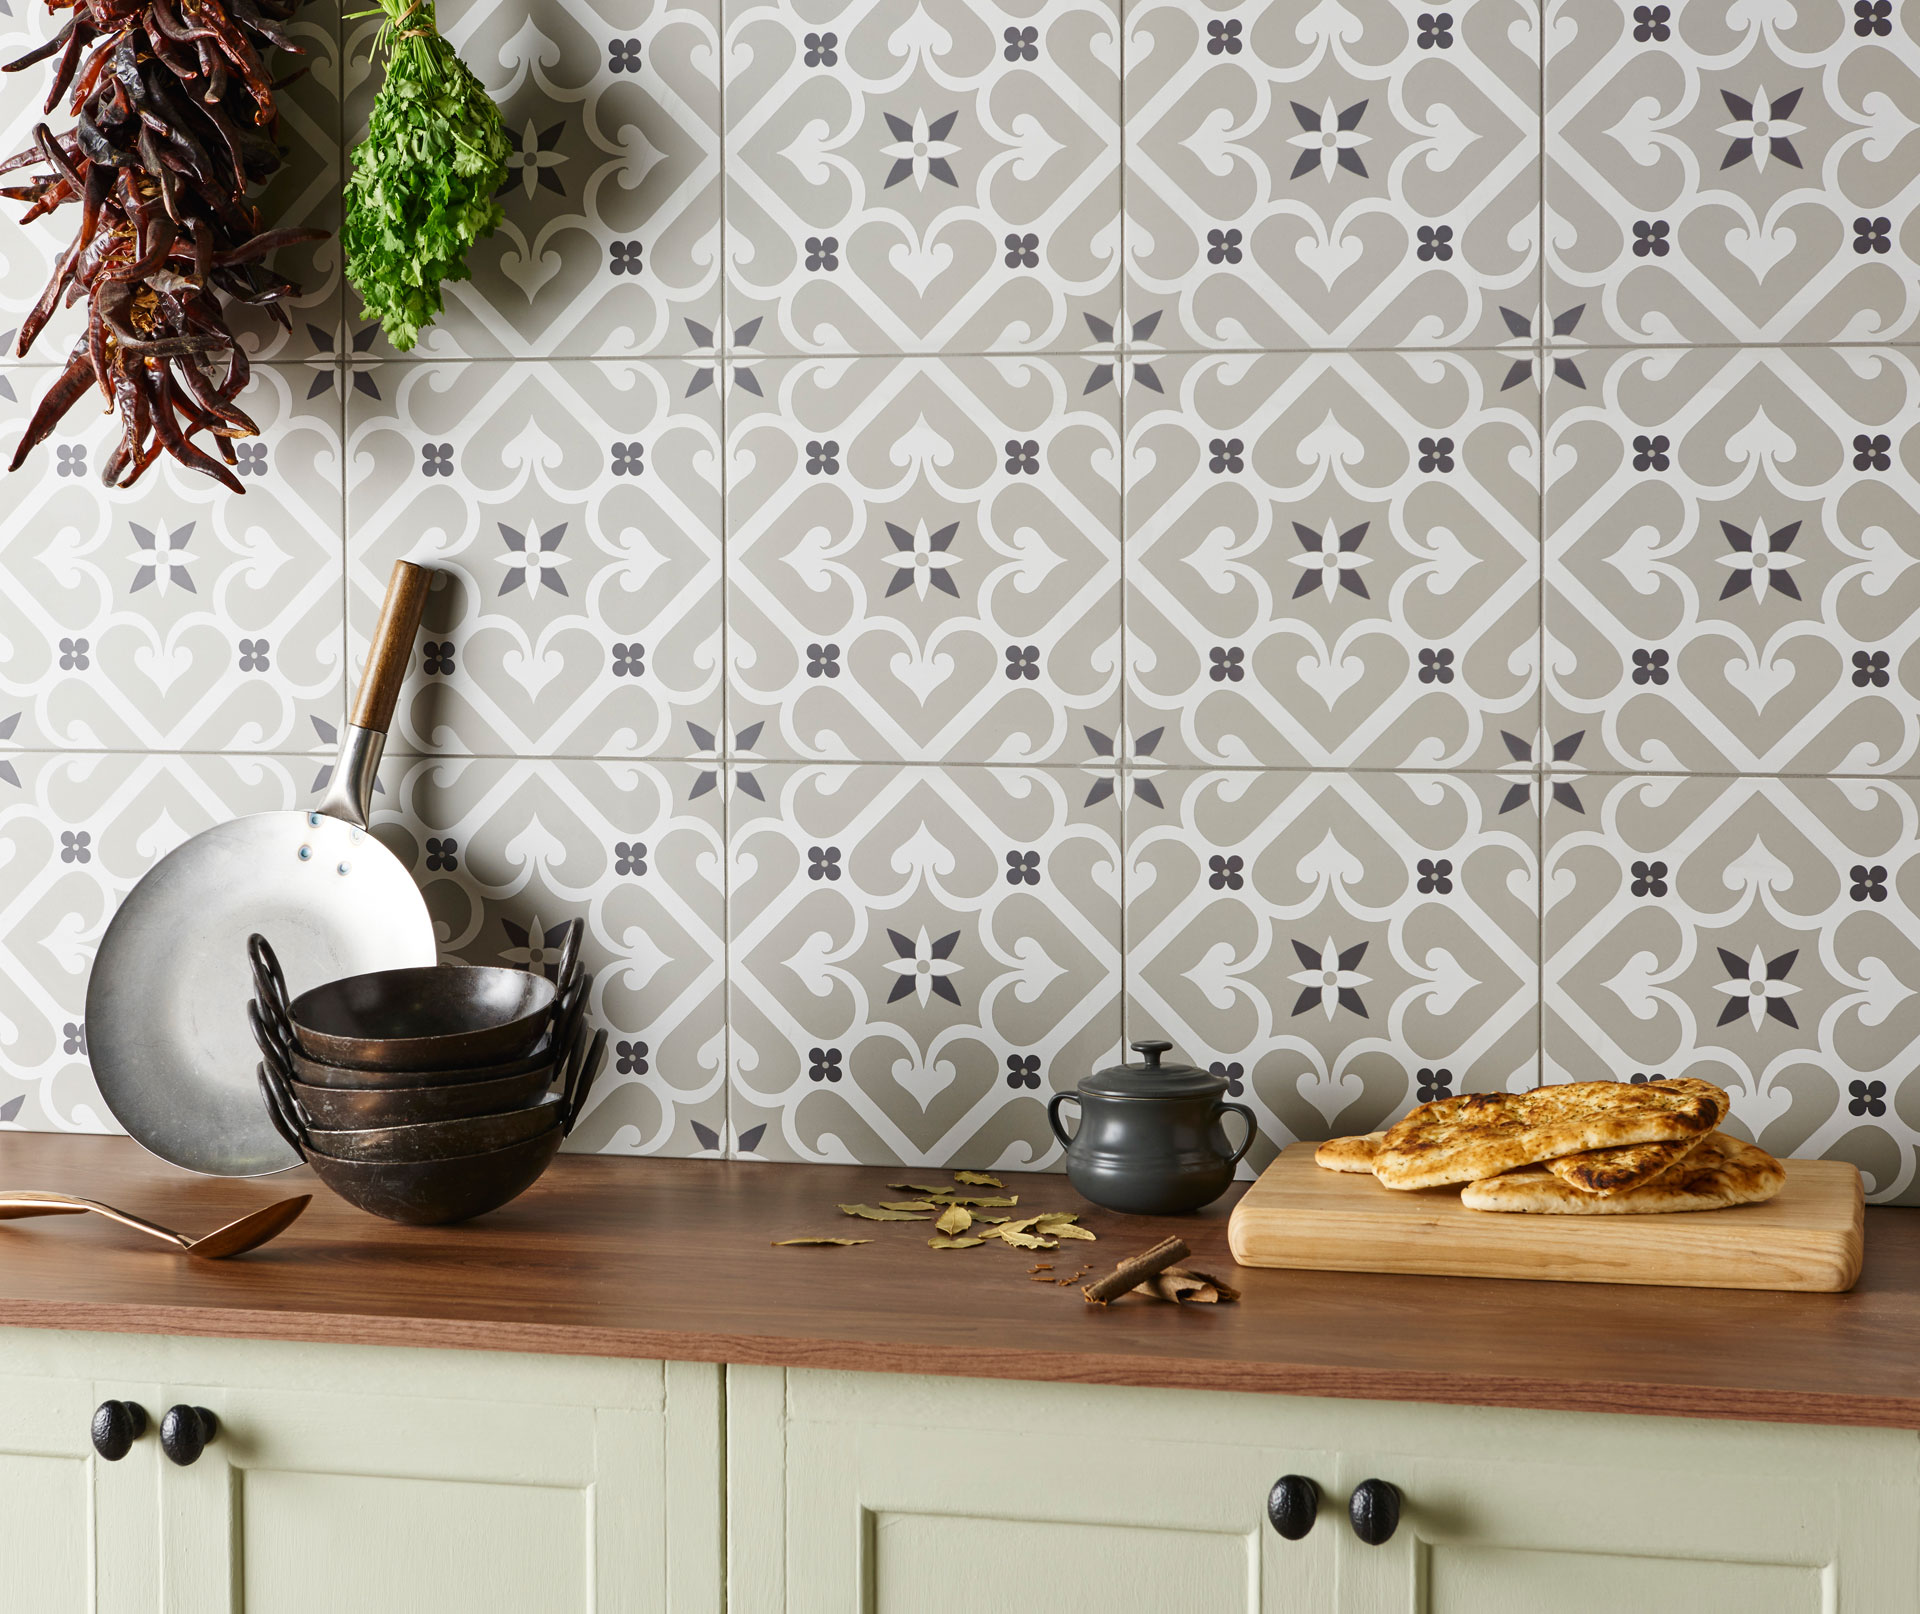 Kitchen Wall Tiling Ideas Part - 35: Original Style